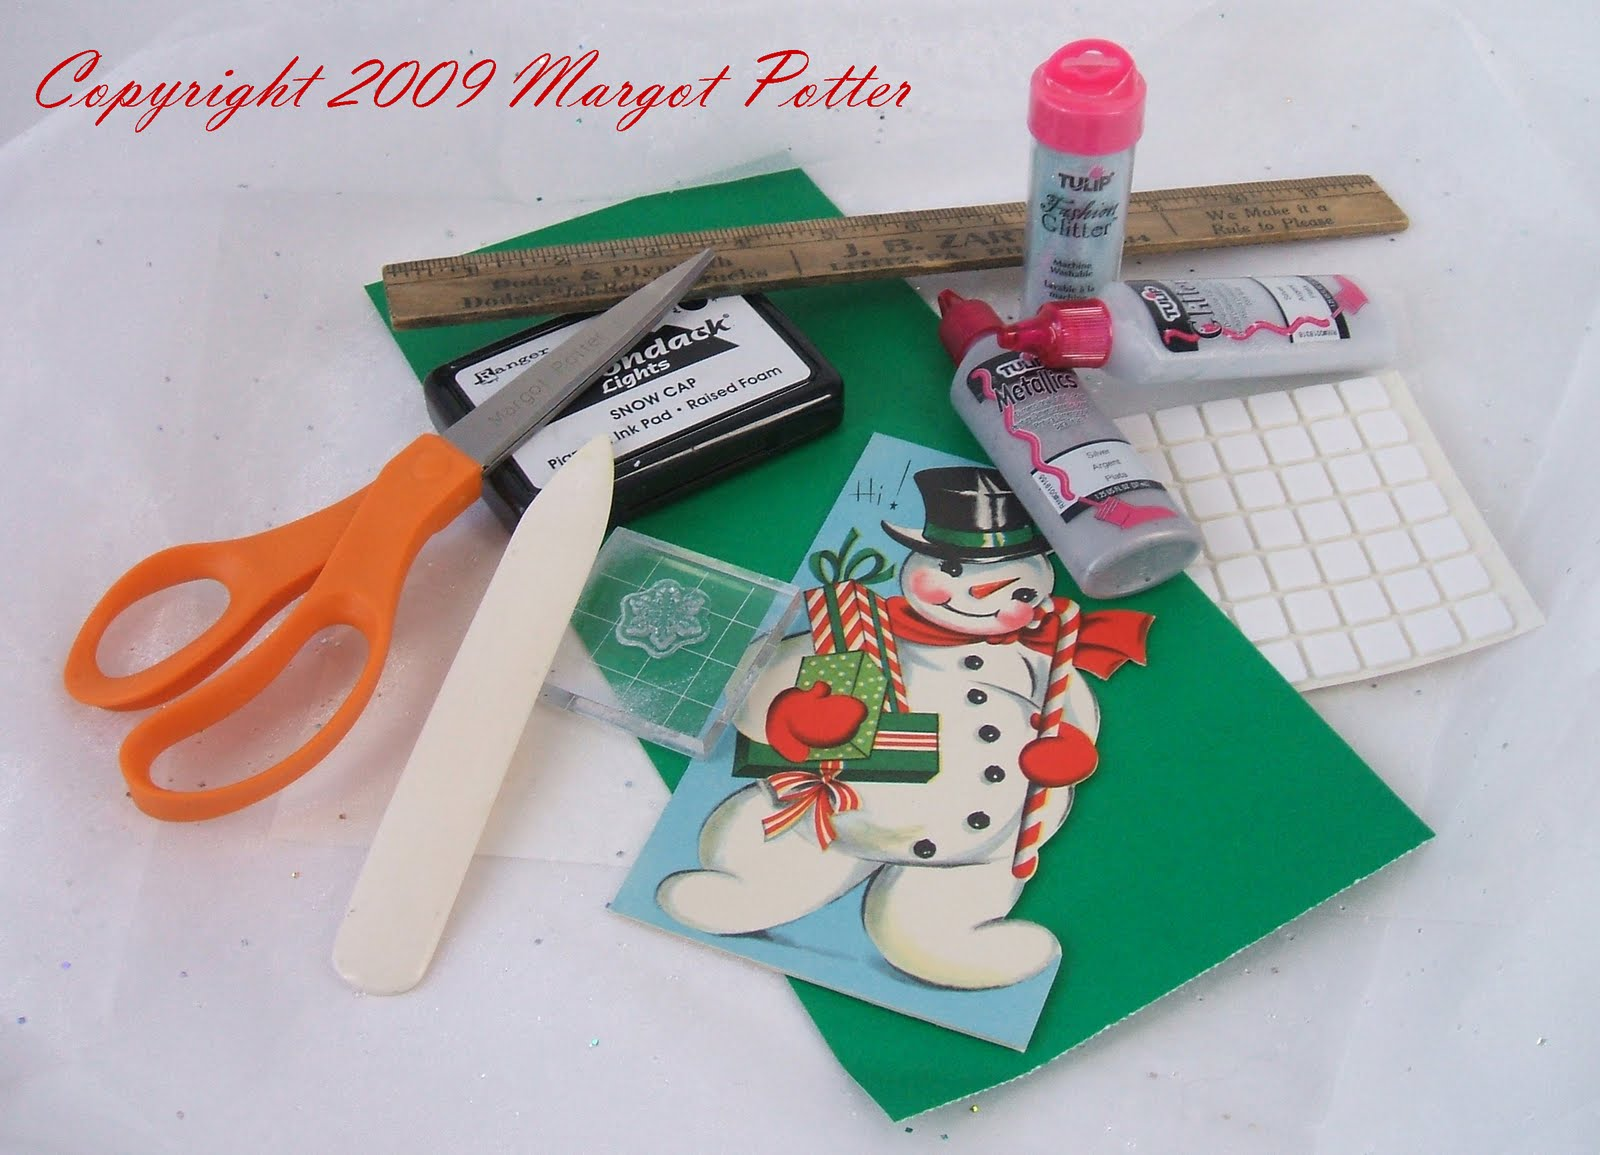 iLoveToCreate Blog: iLoveToCreate Teen: Recycled Christmas Cards